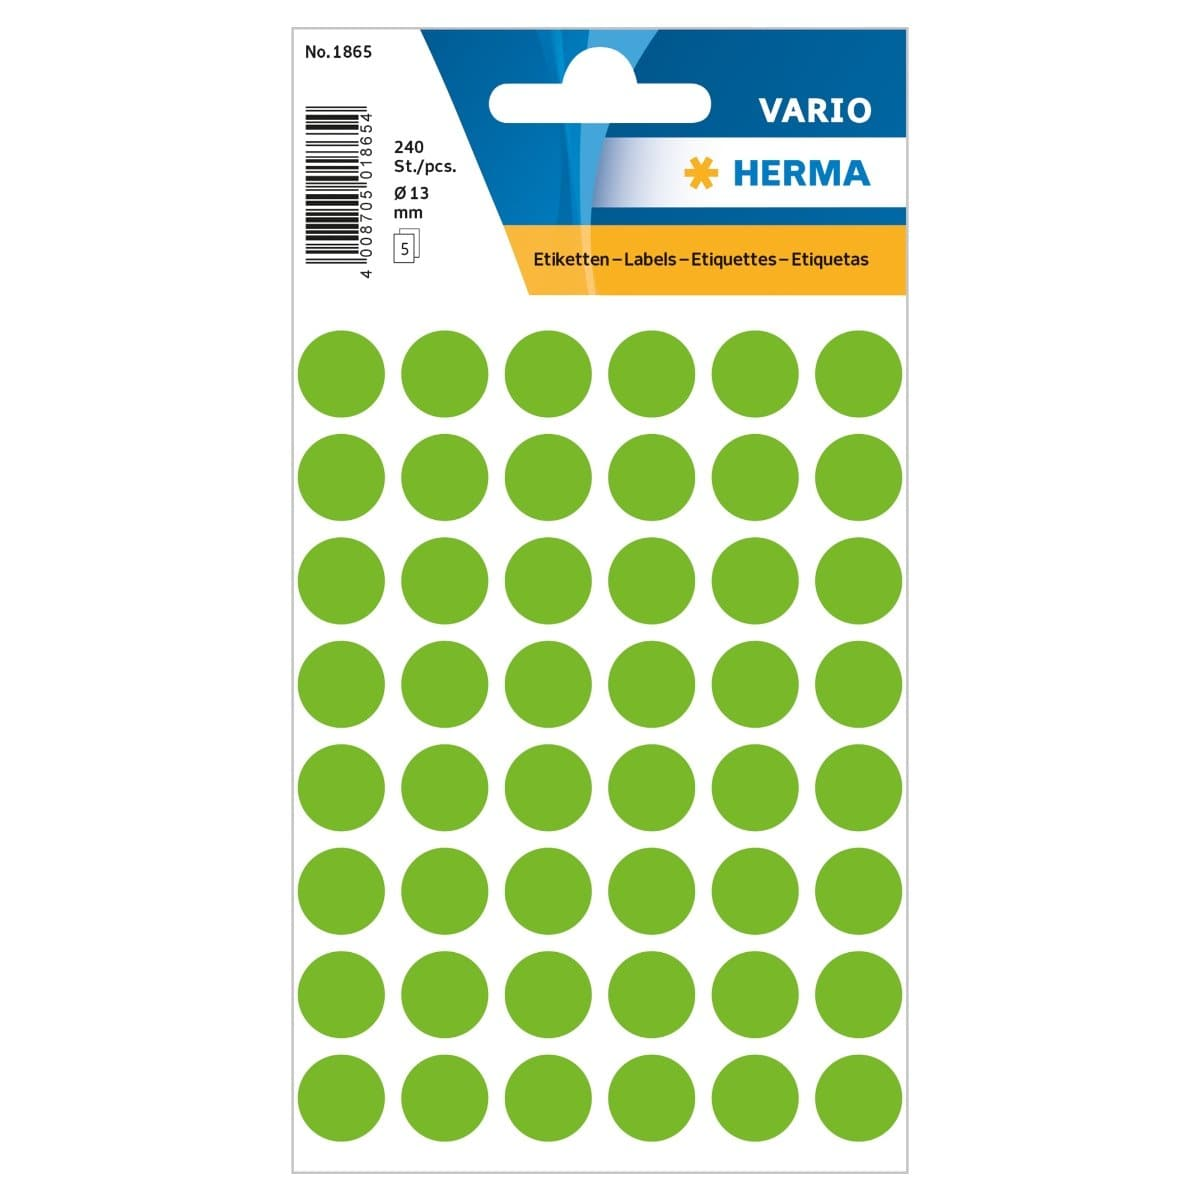 Herma Vario Sticker Color Dots, 13 mm, 240/pack, Green